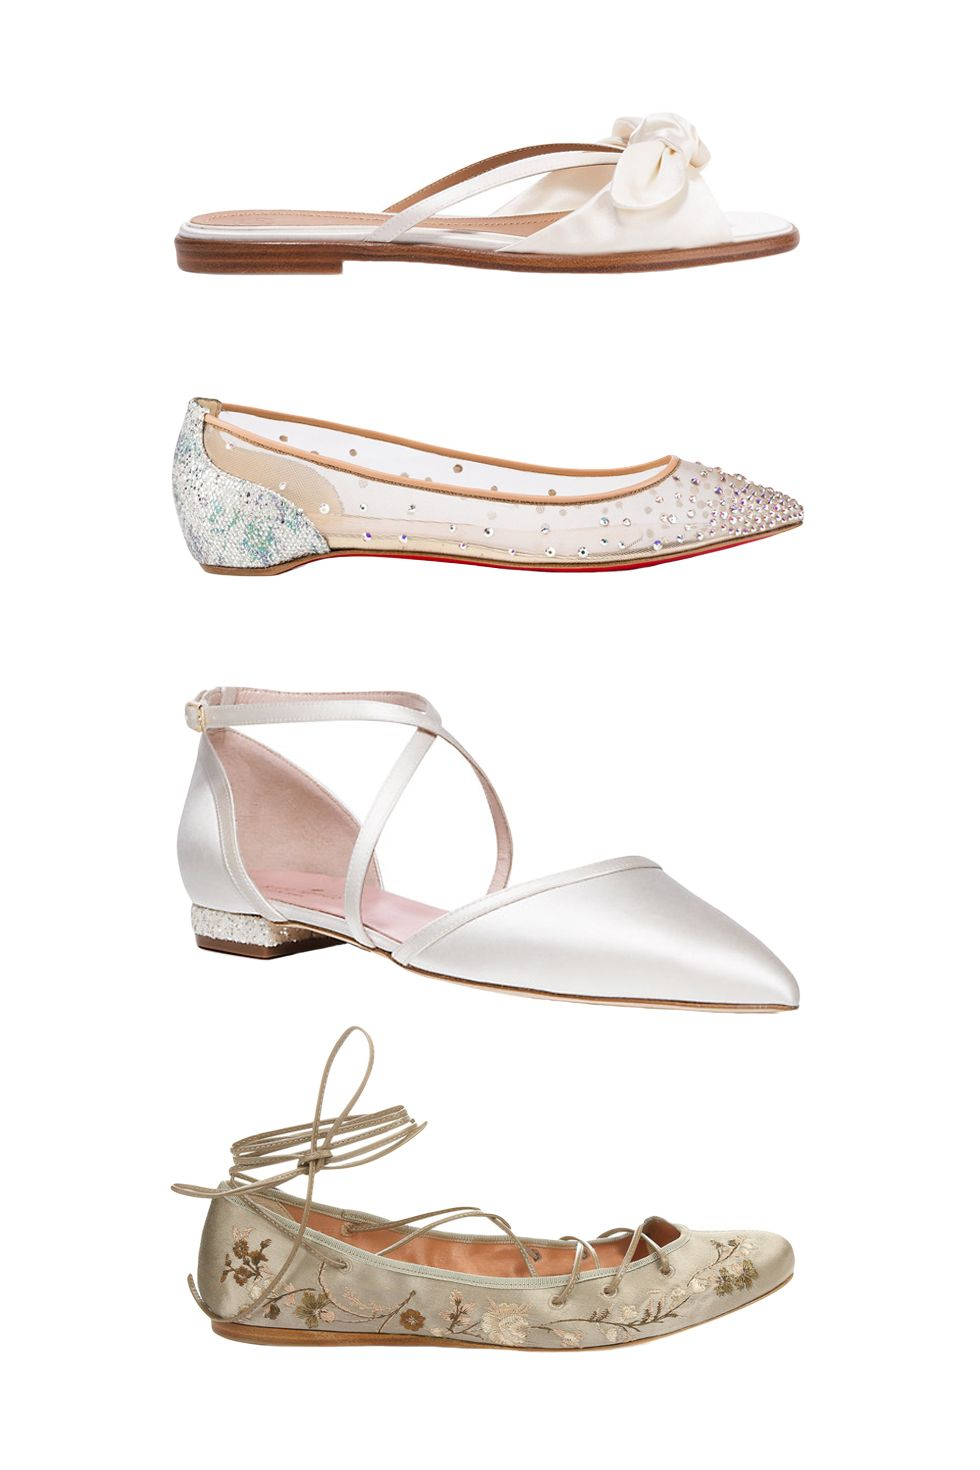 "<p>The Row April Bow-Embellished Silk-Satin Sandals, $795&#x3B; <a href=""https://www.net-a-porter.com/us/en/product/709772/the_row/april-bow-embellished-silk-satin-sandals"" target=""_blank"">net-a-porter.com</a></p><p><a href=""https://www.net-a-porter.com/us/en/product/709772/the_row/april-bow-embellished-silk-satin-sandals"" target=""_blank""></a>Christian Louboutin Body Strass Flat, $995&#x3B; <a href=""http://us.christianlouboutin.com/us_en/shop/women/body-strass-flat-1.html"" target=""_blank"">christianlouboutin.com</a></p><p><a href=""http://us.christianlouboutin.com/us_en/shop/women/body-strass-flat-1.html"" target=""_blank""></a>Kate Spade Britta Flats, $298&#x3B; <a href=""https://www.katespade.com/products/britta-flats/S144022SA.html"" target=""_blank"">katespade.com</a></p><p>Etro Cora Embroiderd Satin Pumps, $1,042&#x3B; <a href=""http://www.matchesfashion.com/us/products/Etro-Cora-embroidered-satin-pumps-1045789"" target=""_blank"">matchesfashion.com</a><br></p>"